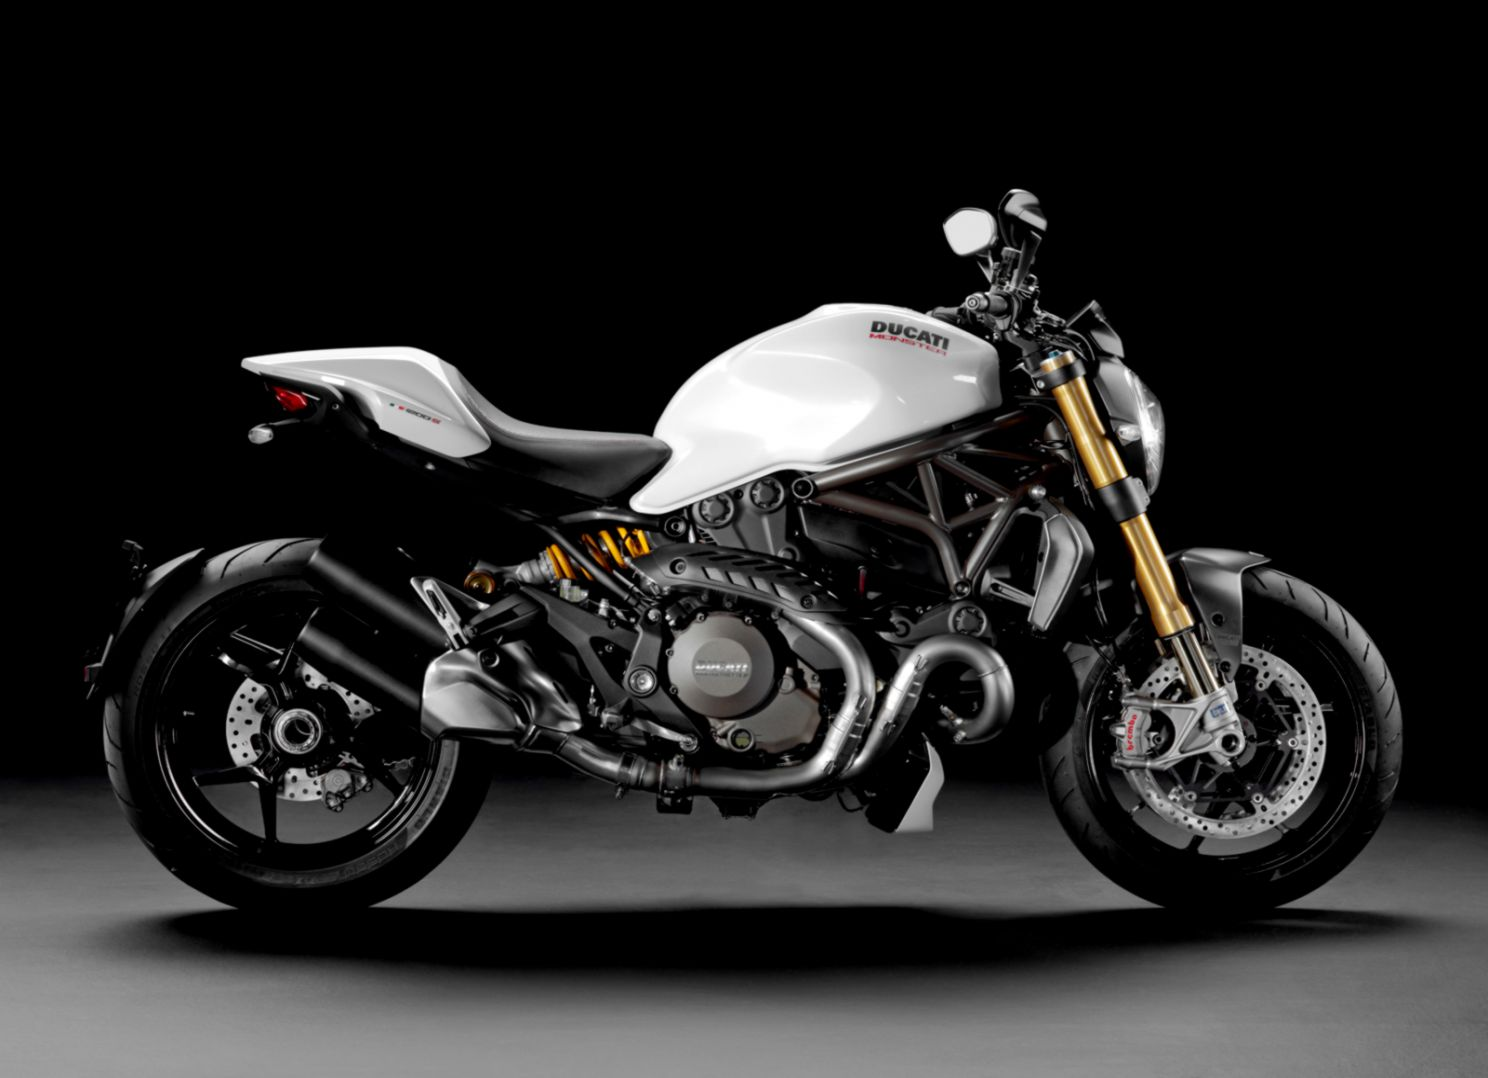 2014 Ducati Monster 1200 S note the Yspoke rear wheel and gold